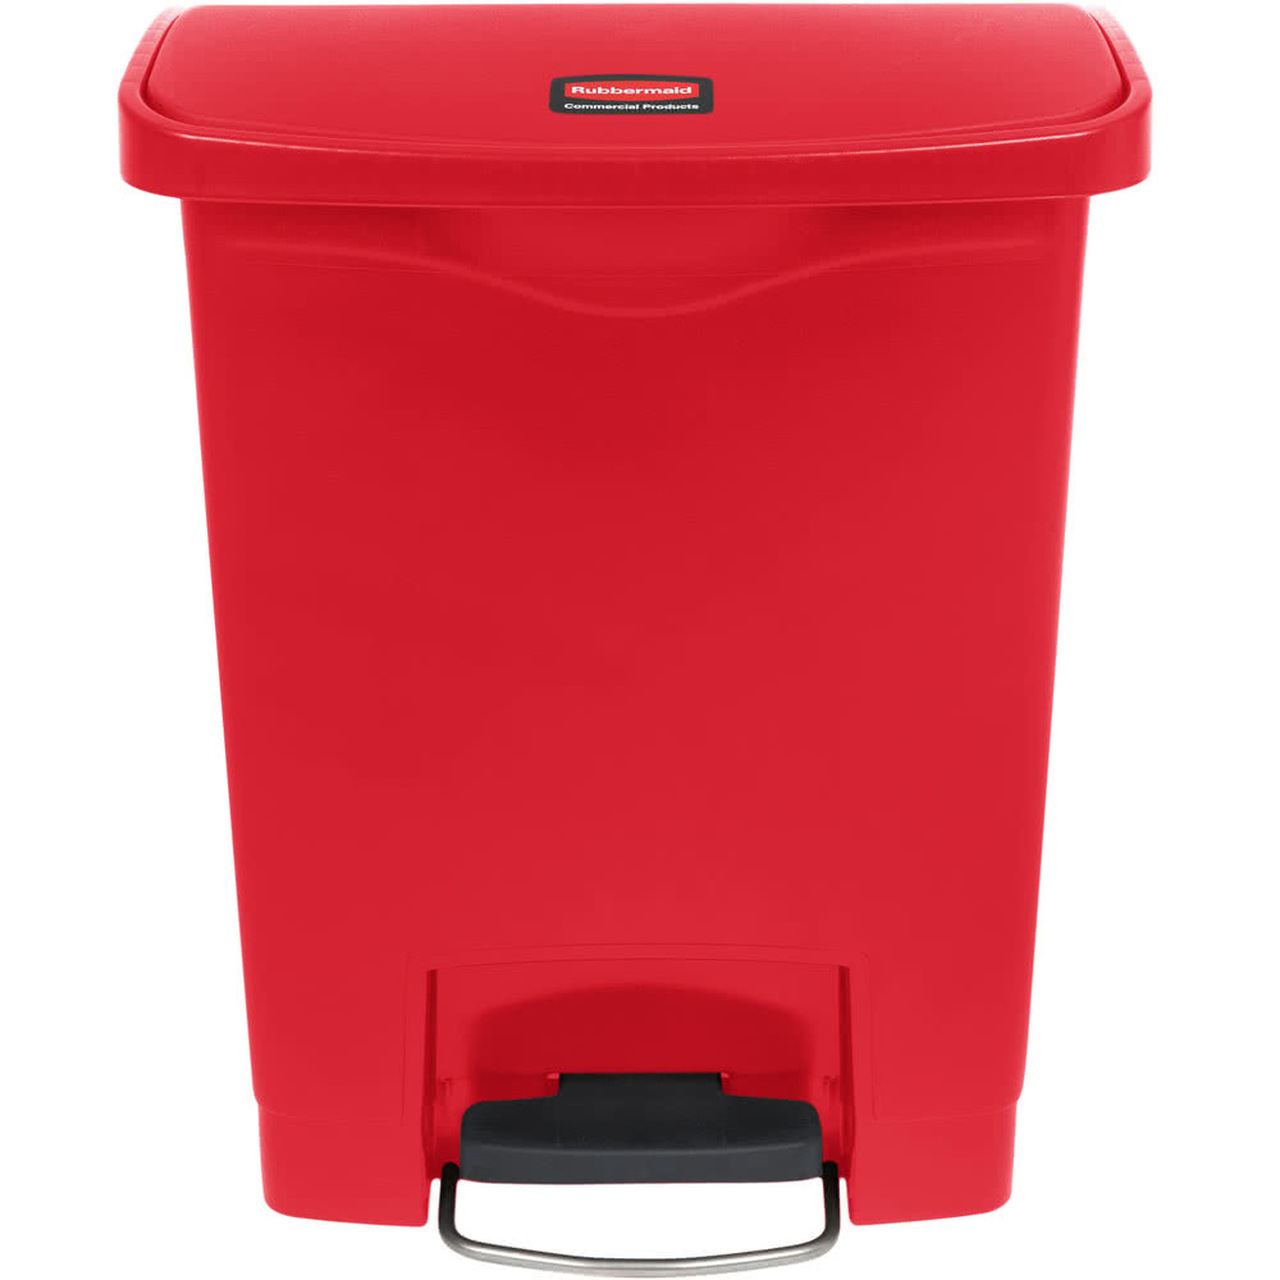 Rubbermaid Slim Jim 30L Resin Front Step Step-On Red